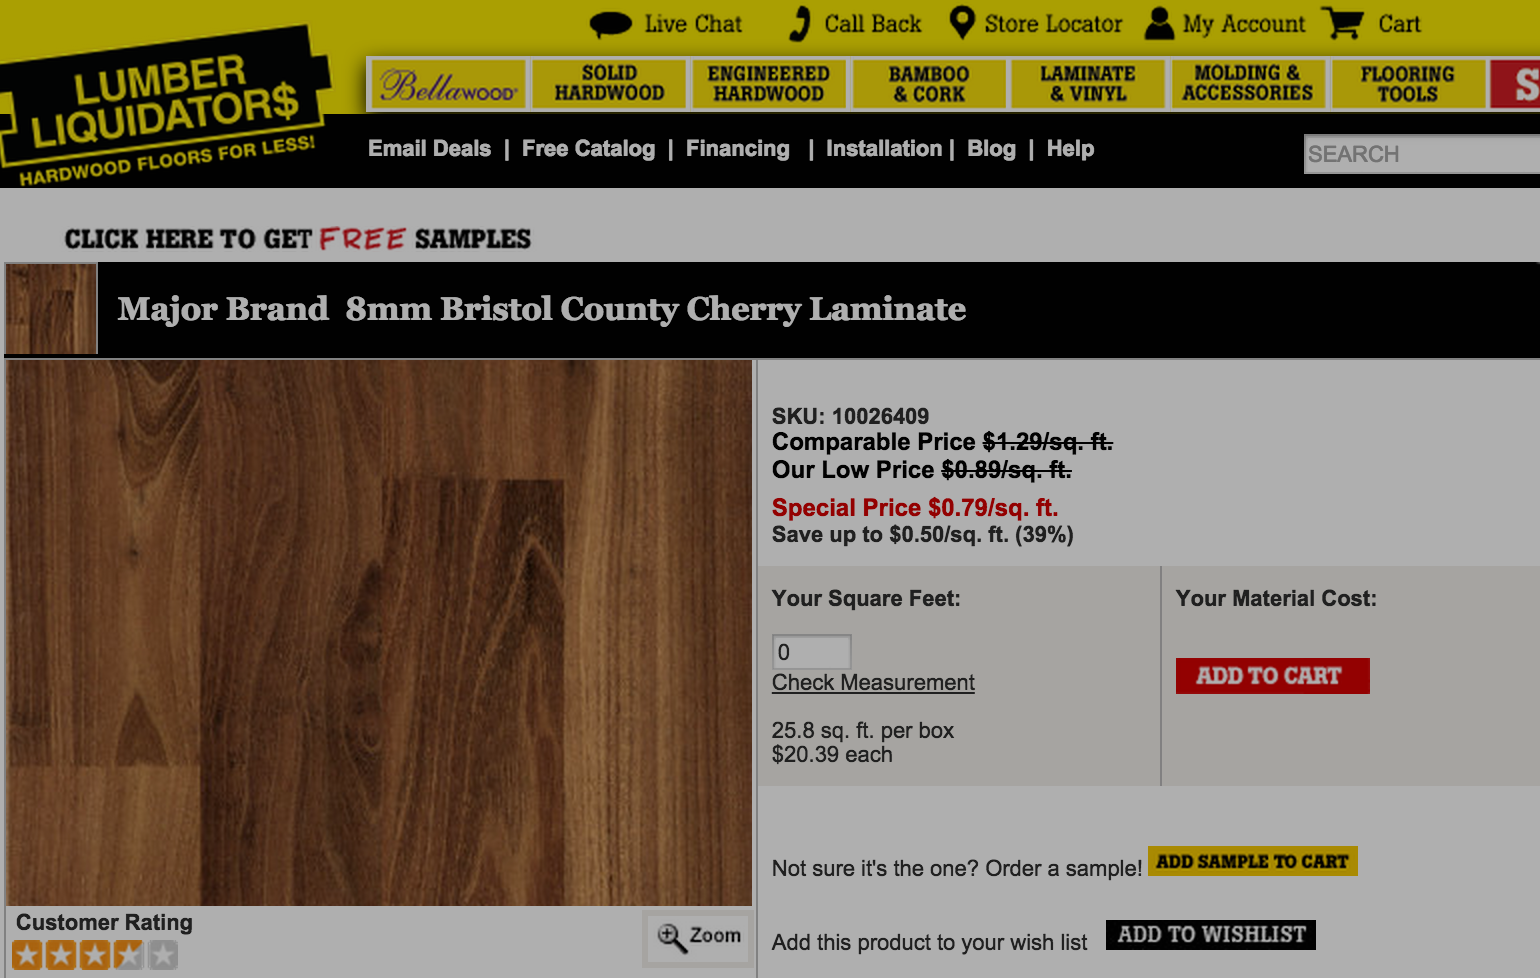 Lumber Liquidators To Pay $36M To Settle Formaldehyde-Filled Flooring Suit – Consumerist